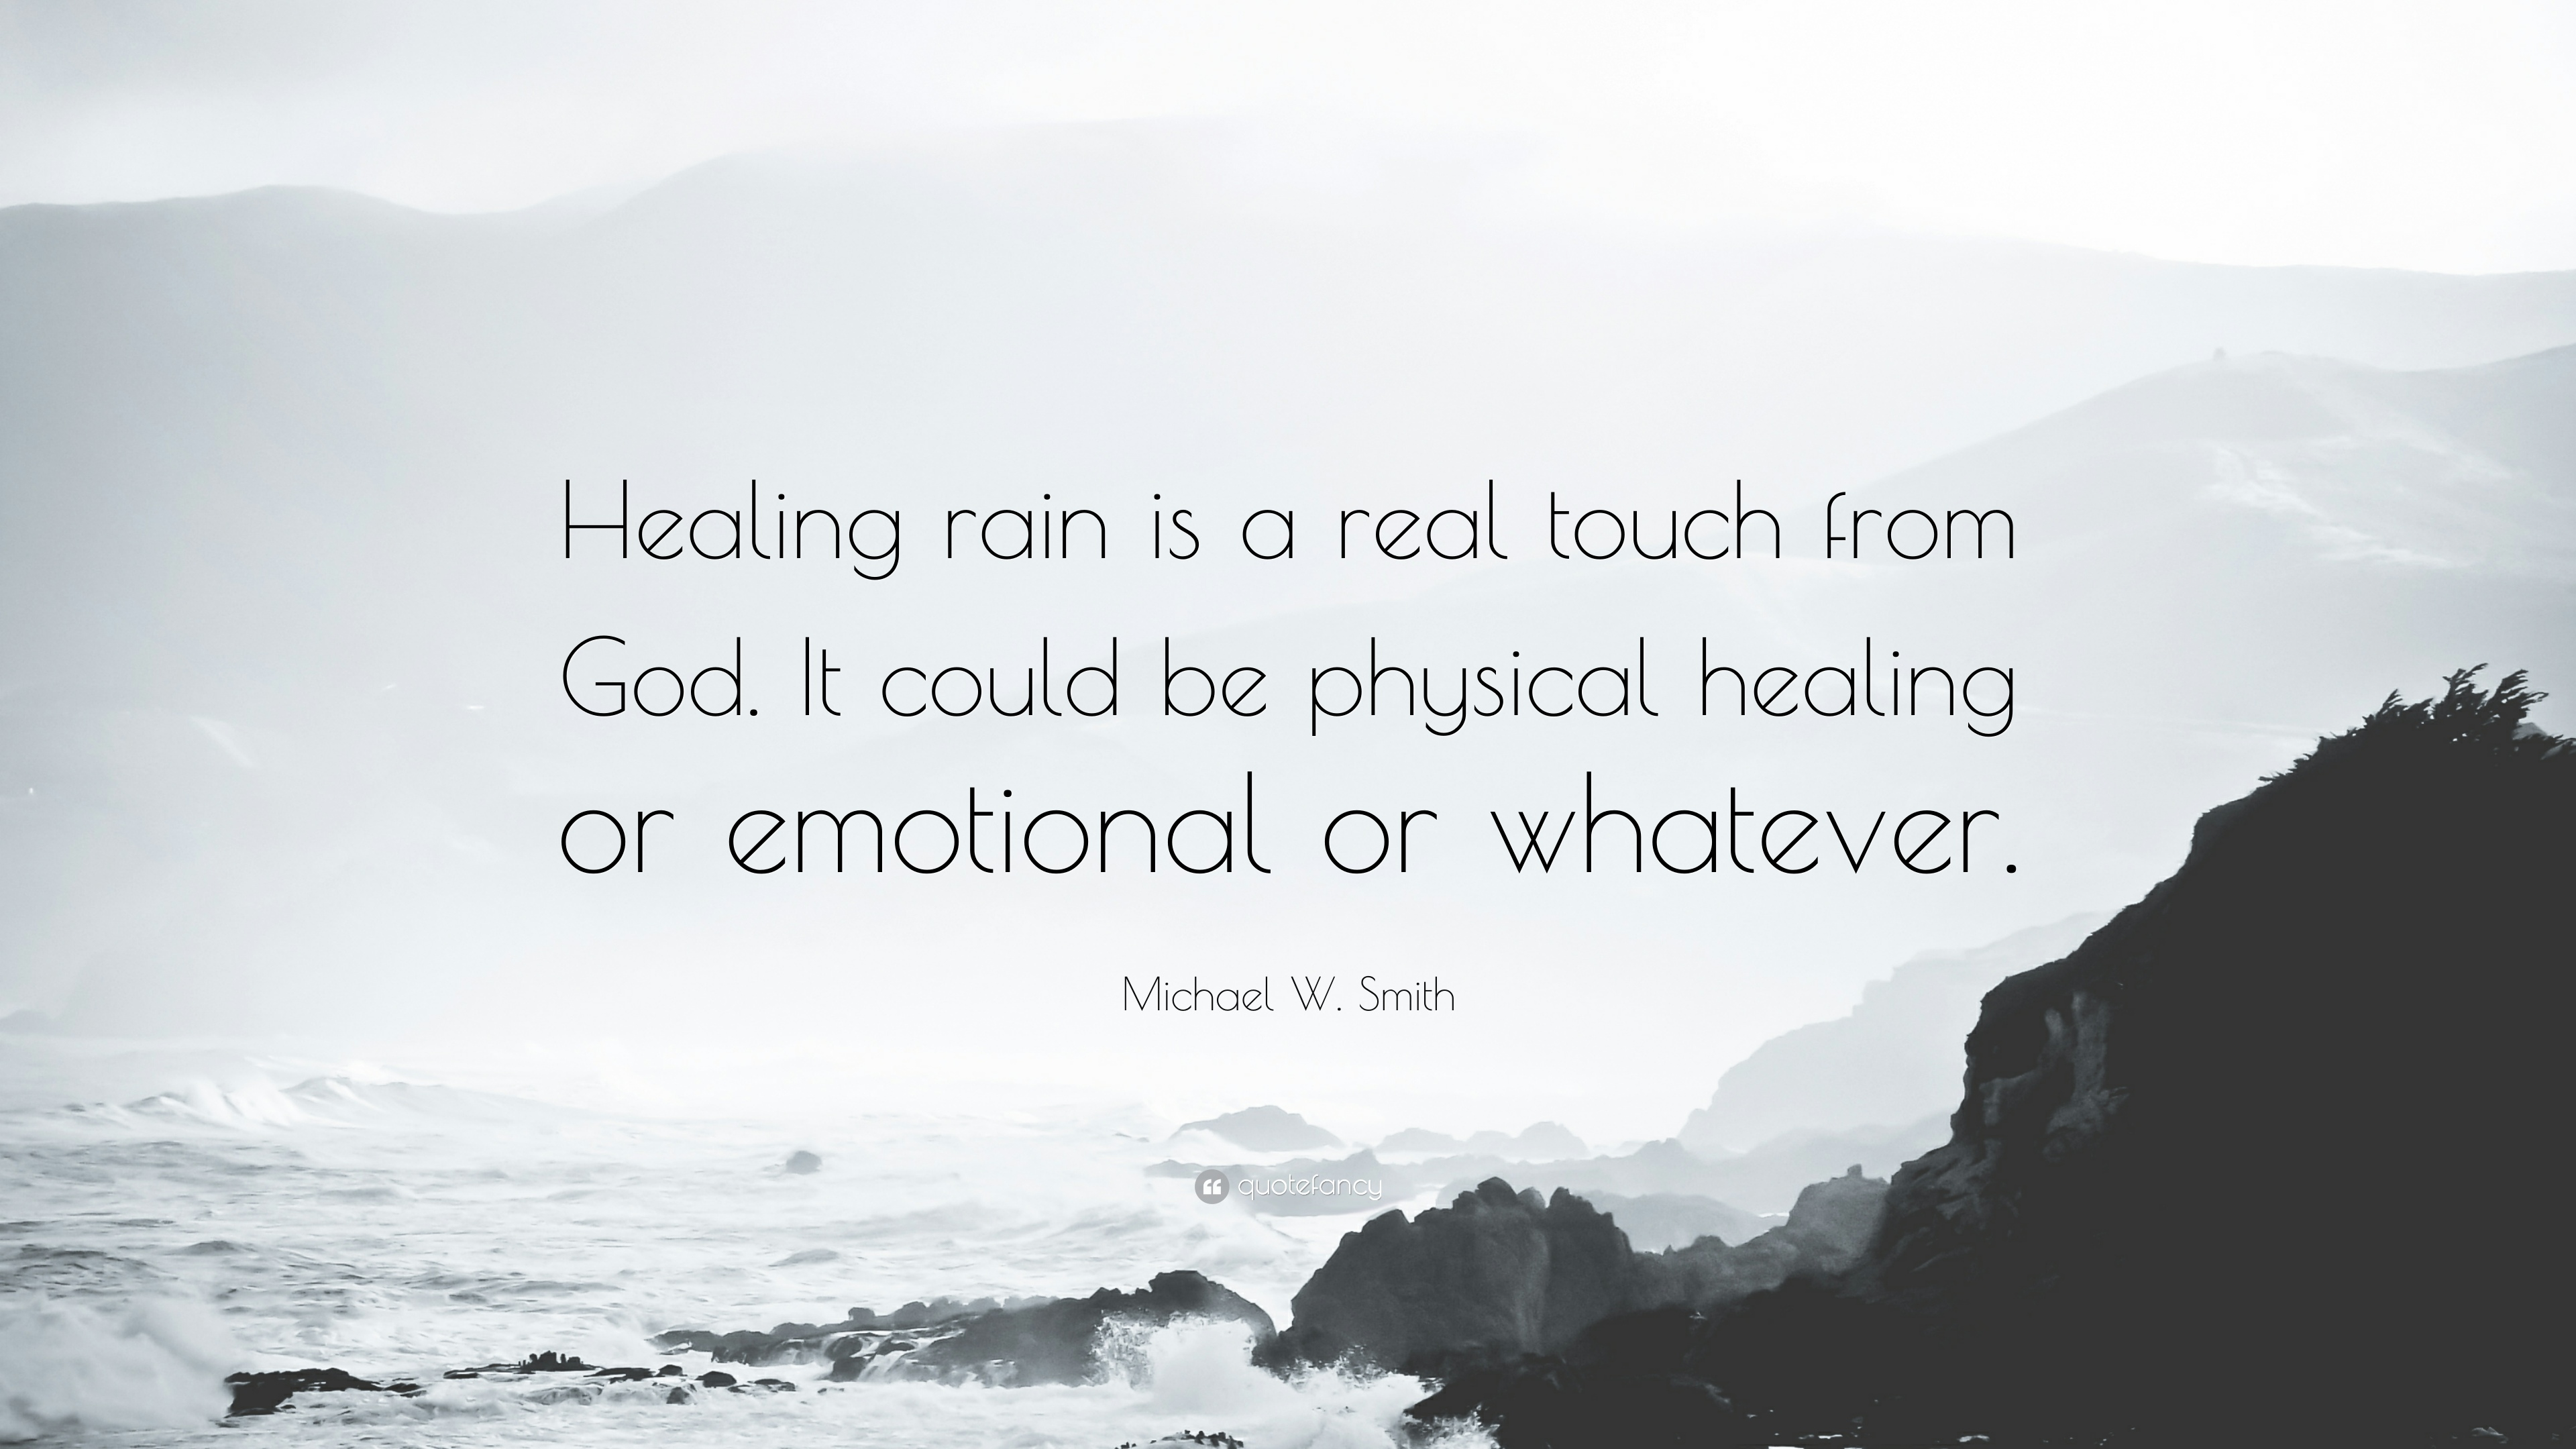 Image of: Comfort Michael W Smith Quote healing Rain Is Real Touch From God Quotefancy Michael W Smith Quote healing Rain Is Real Touch From God It